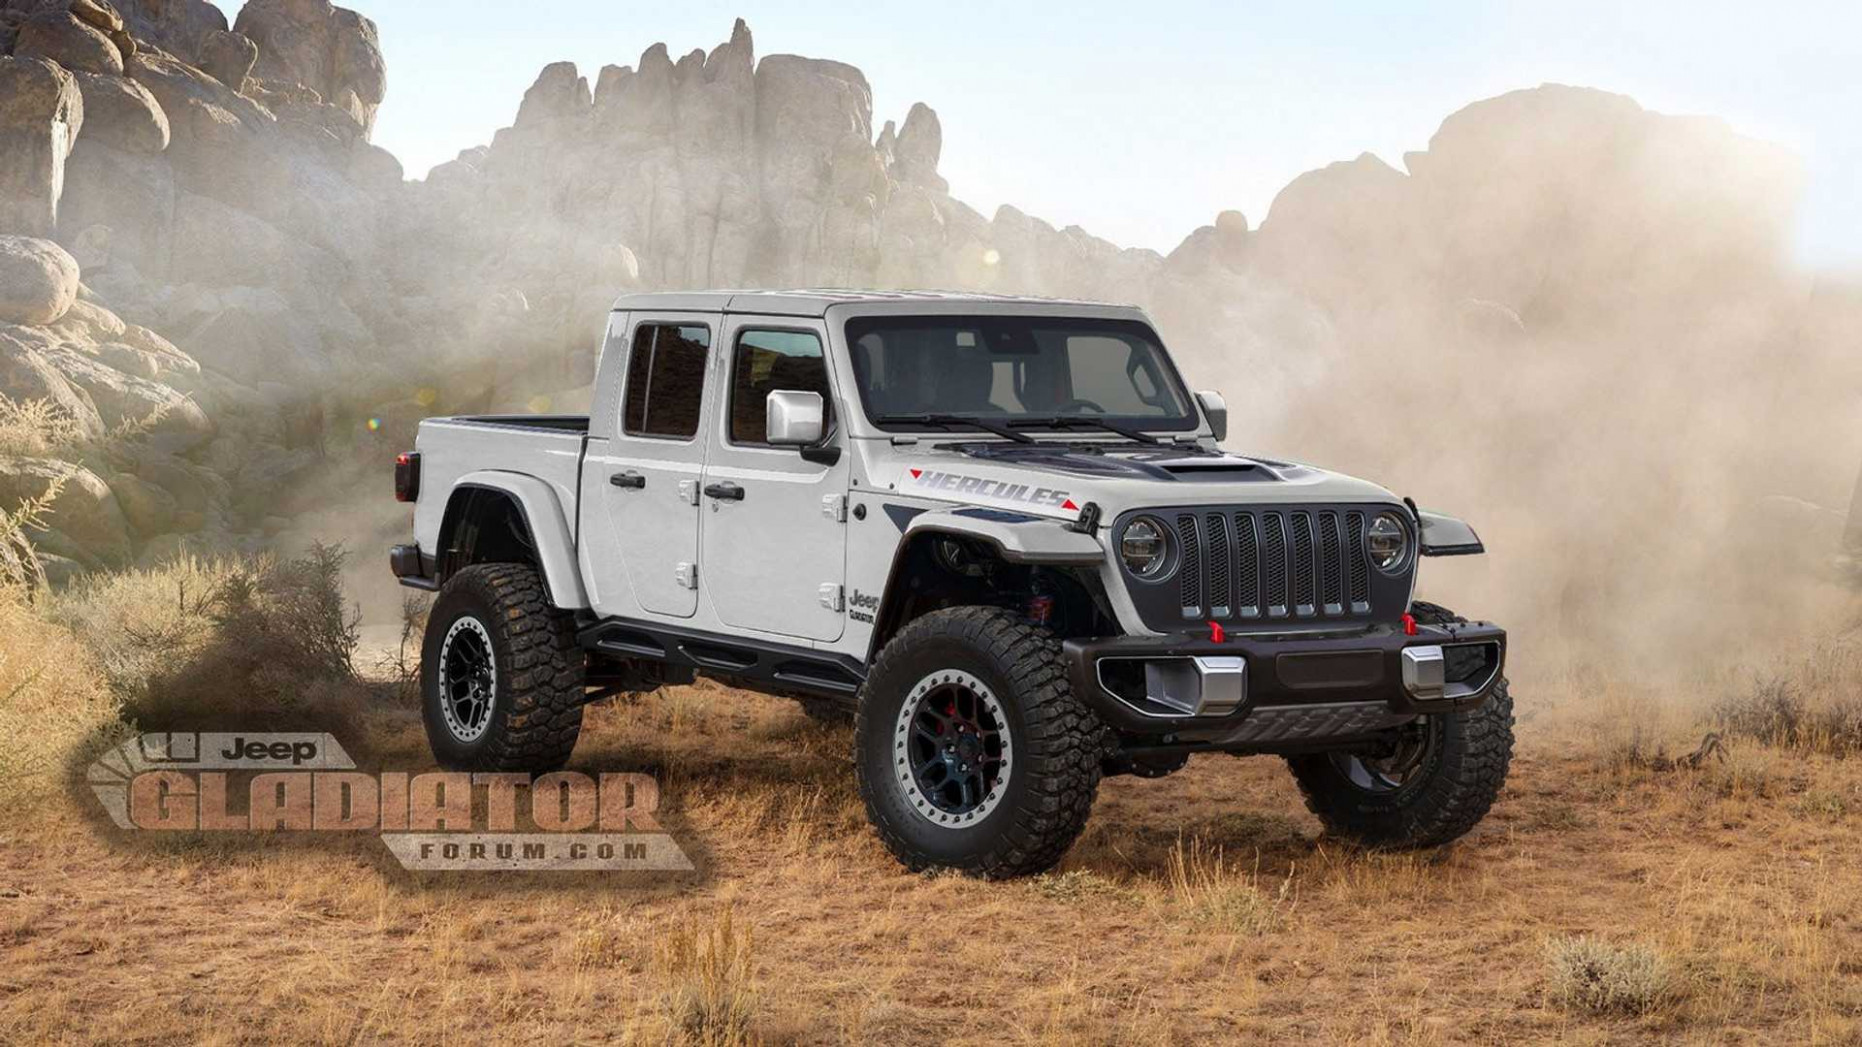 Research New What Is The Price Of The 2022 Jeep Gladiator